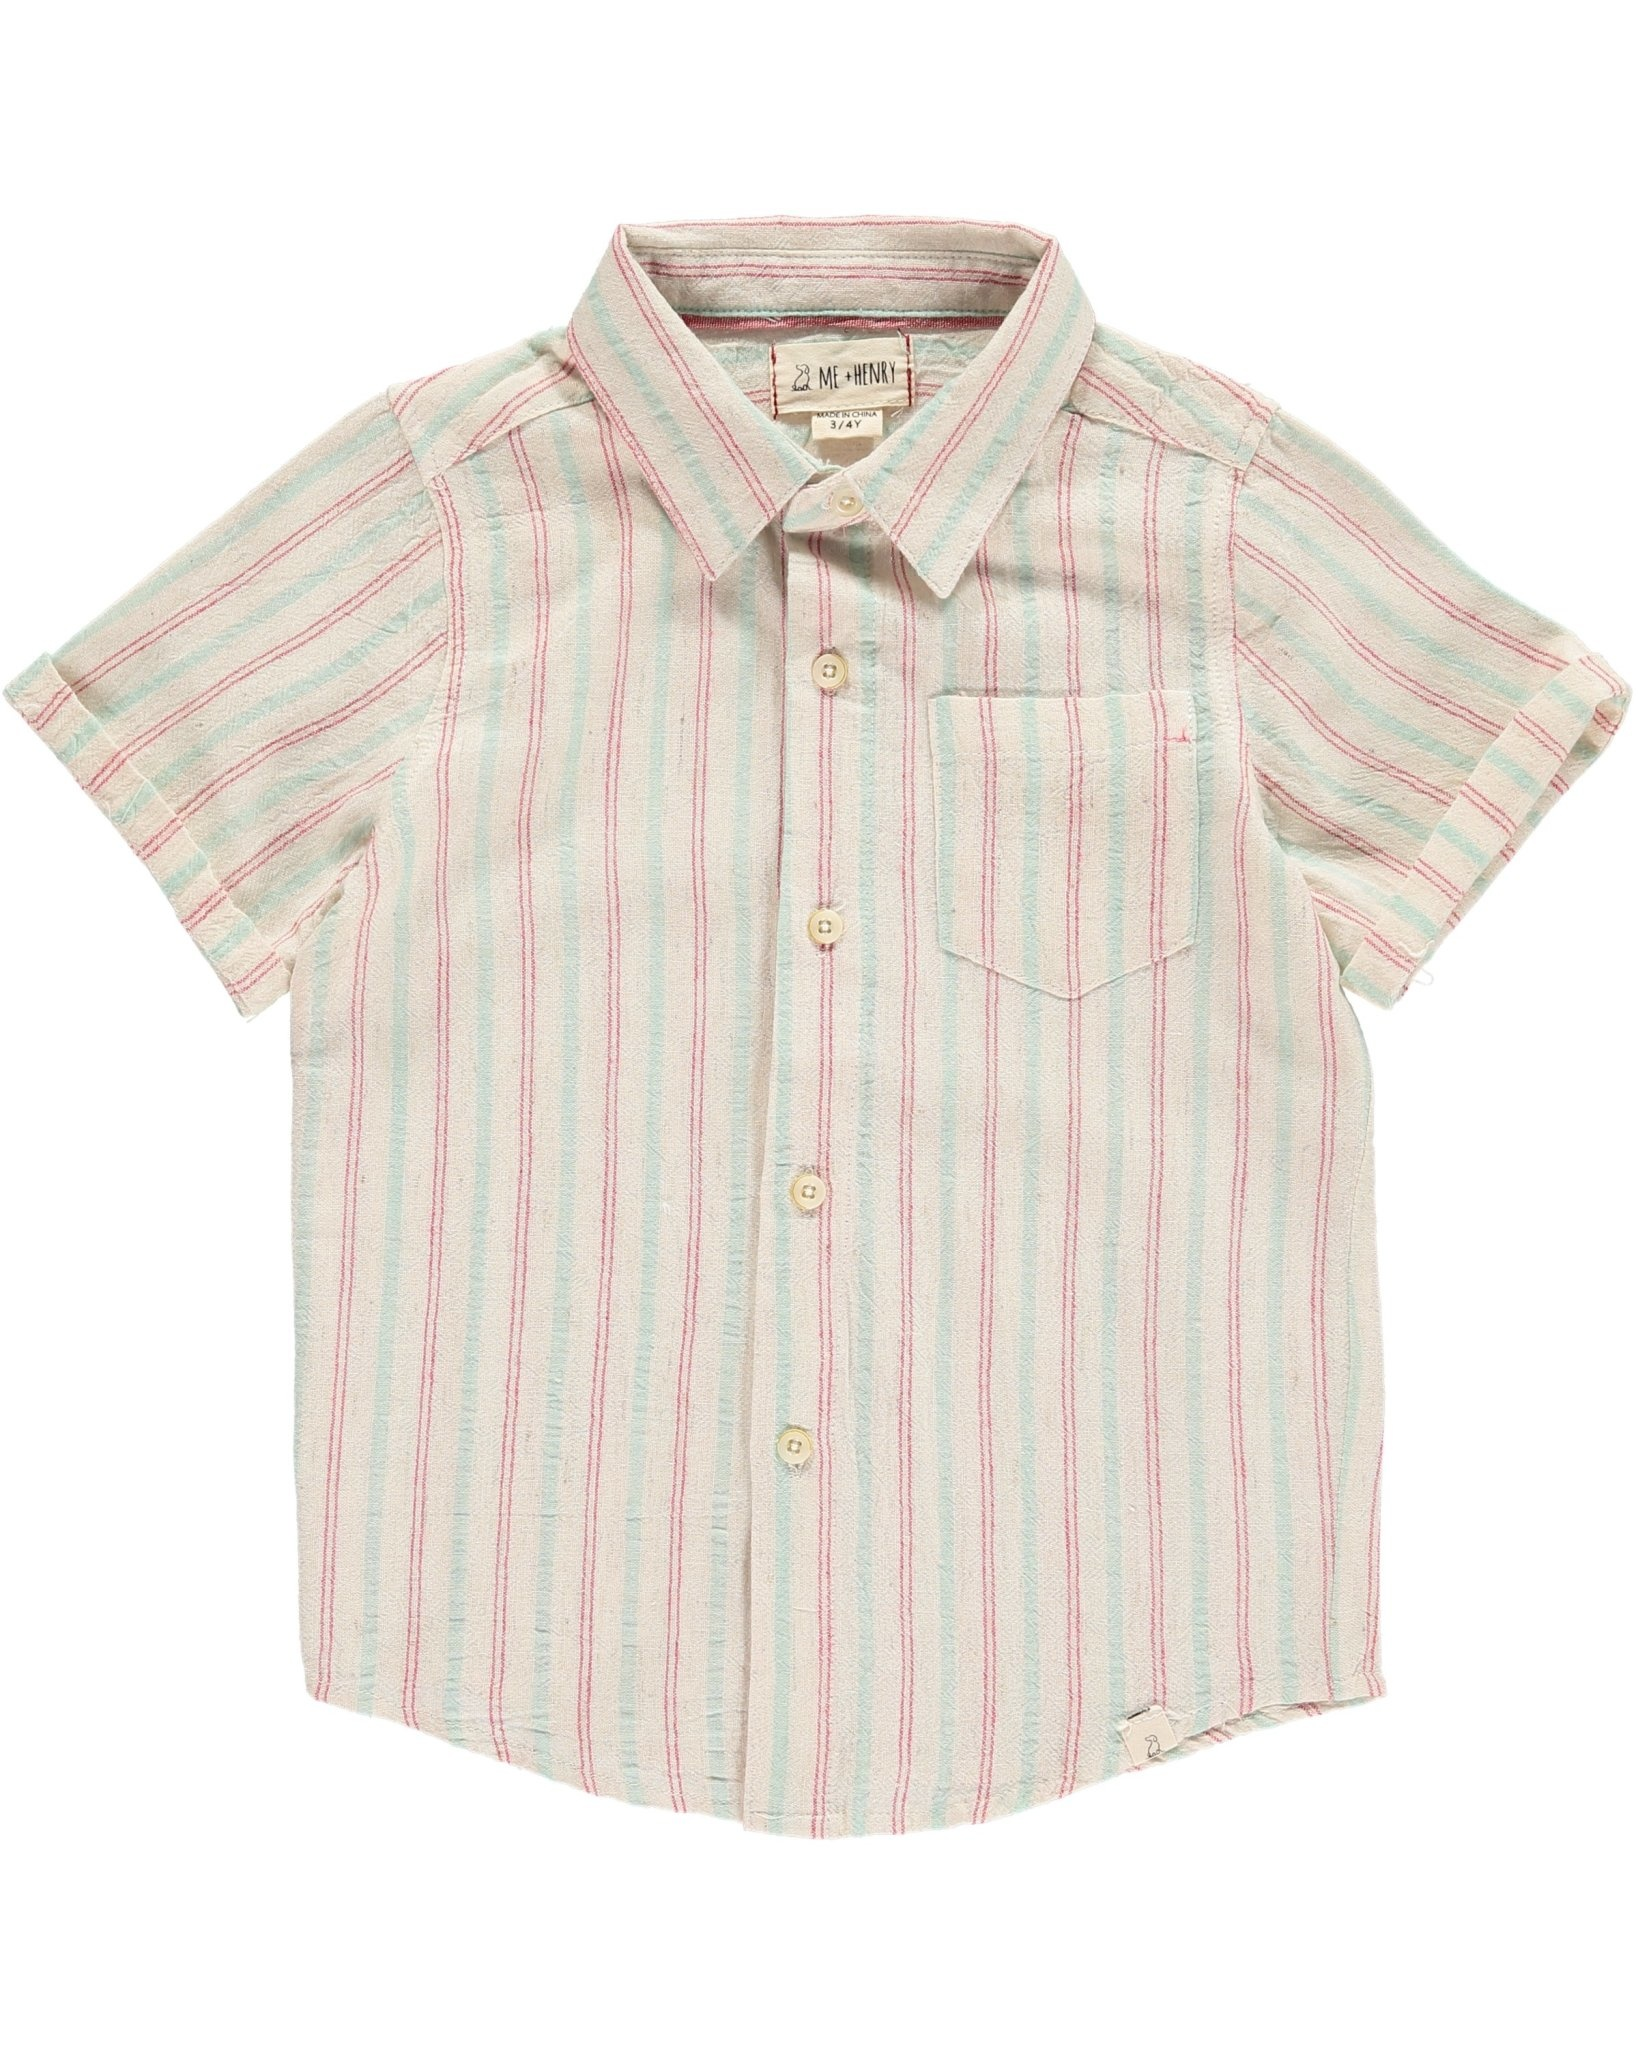 Me + Henry Green/Red Striped SS Woven Shirt